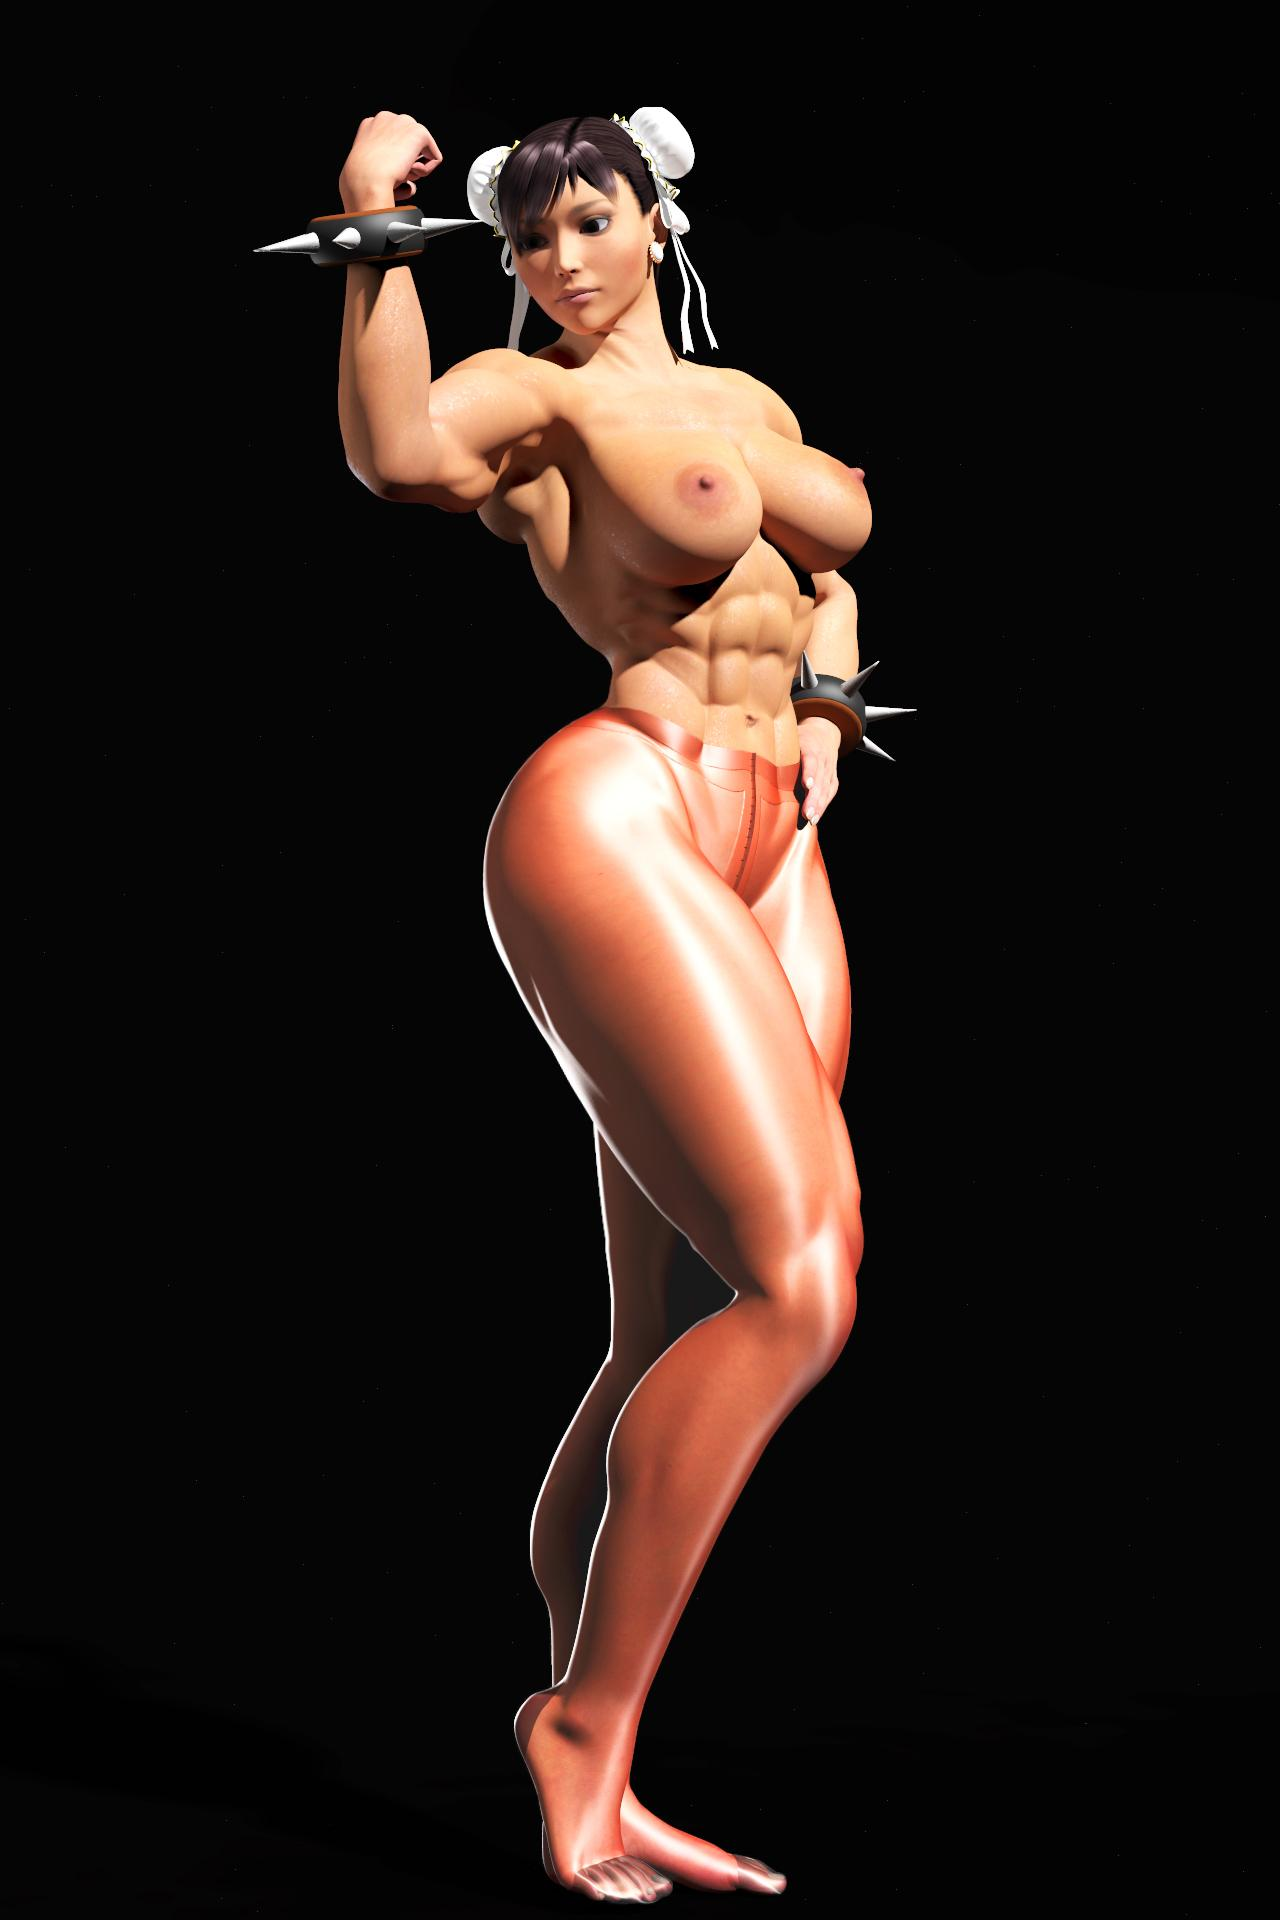 Sexy street fighter girls nude pics cartoon pics